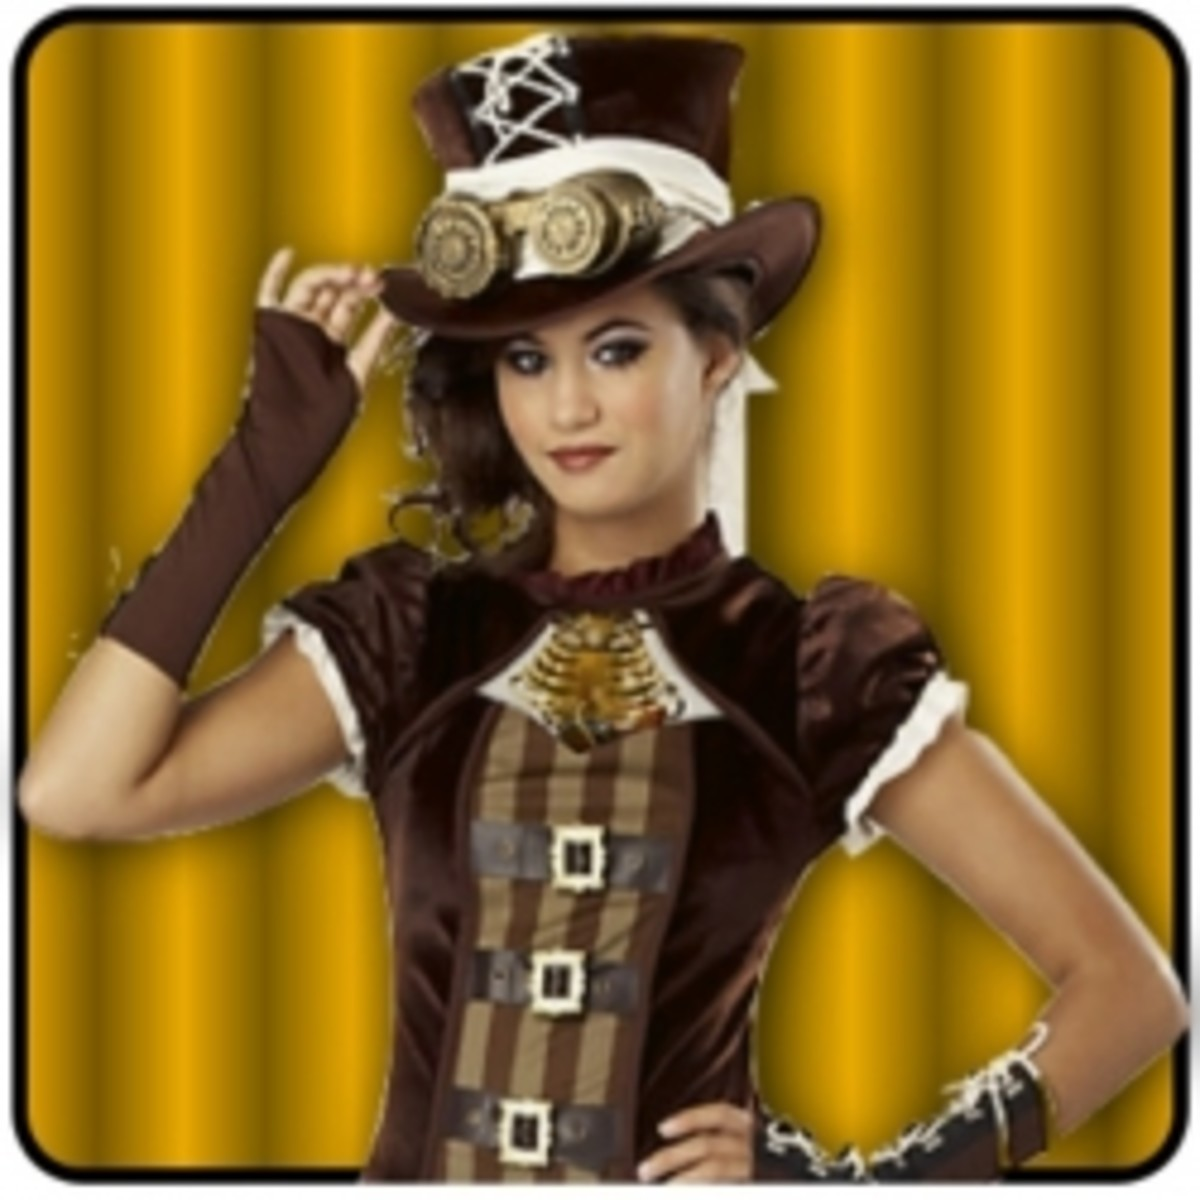 Steampunk Costumes for Halloween and Cosplay